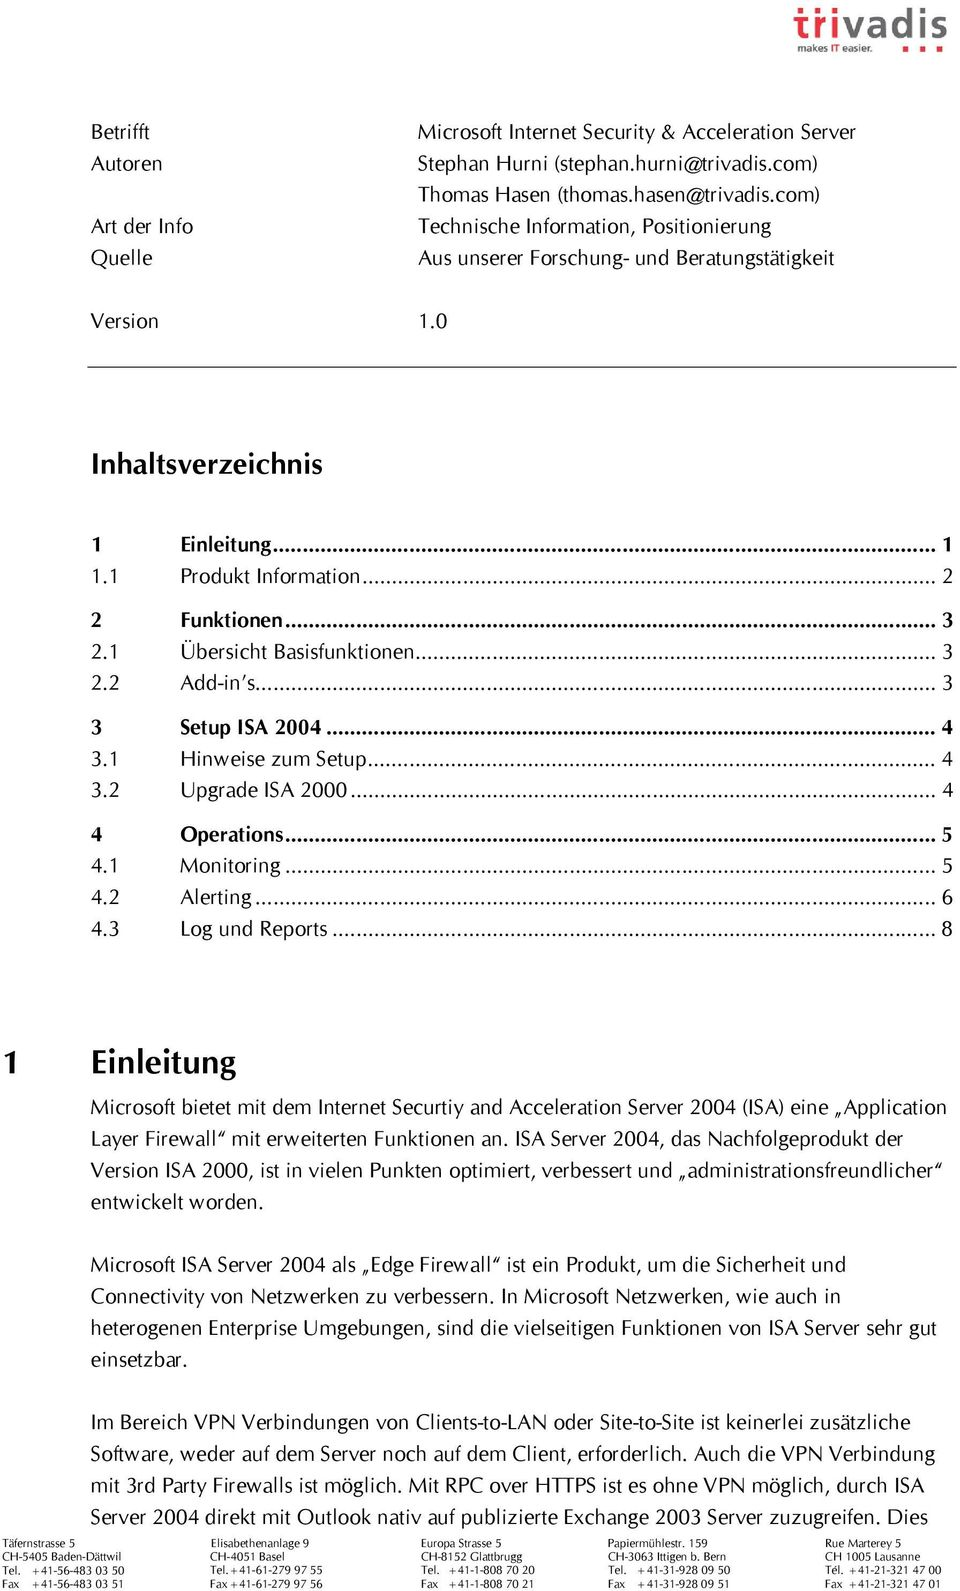 1 Übersicht Basisfunktionen... 3 2.2 Add-in s... 3 3 Setup ISA 2004... 4 3.1 Hinweise zum Setup... 4 3.2 Upgrade ISA 2000... 4 4 Operations... 5 4.1 Monitoring... 5 4.2 Alerting... 6 4.